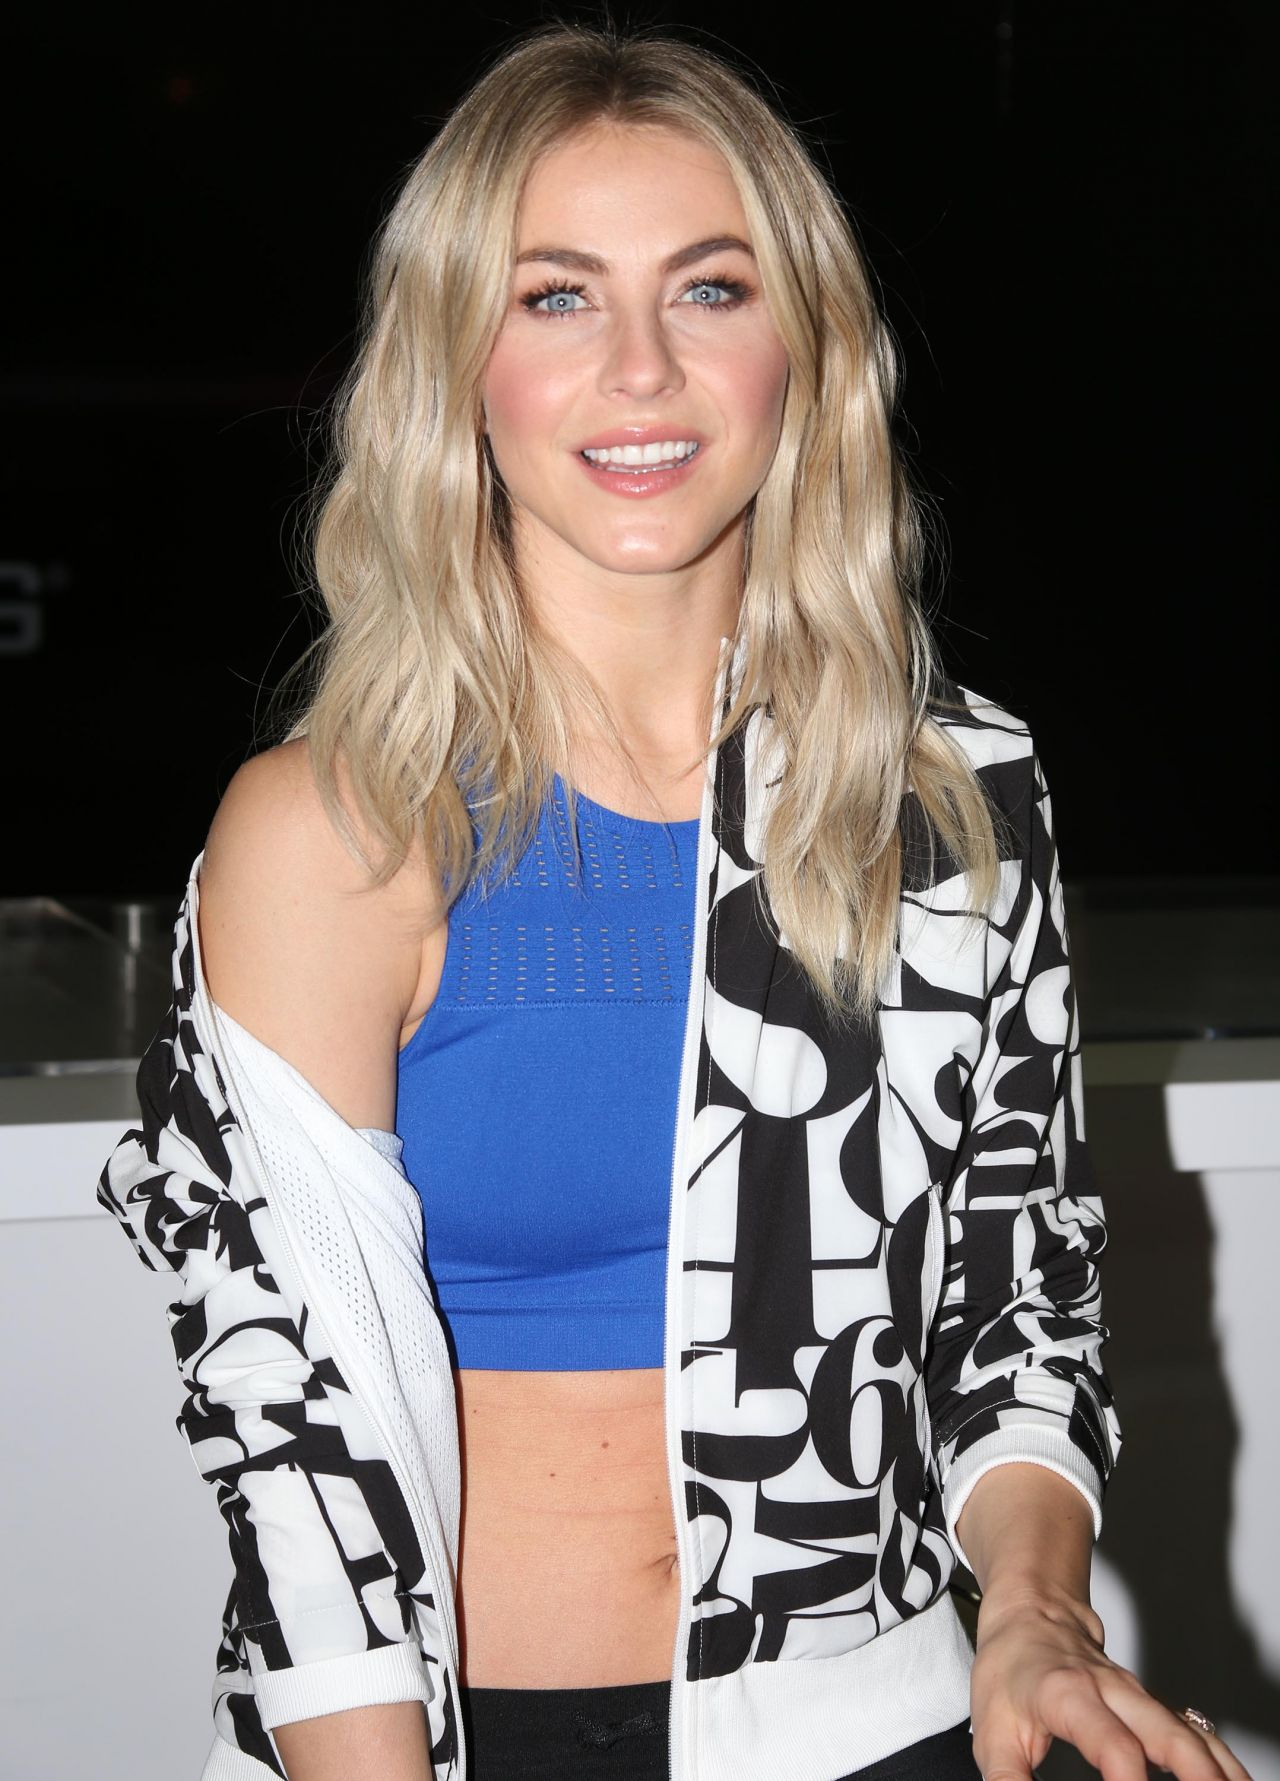 Julianne Hough Project Womens Mpg Sport Booth Inside